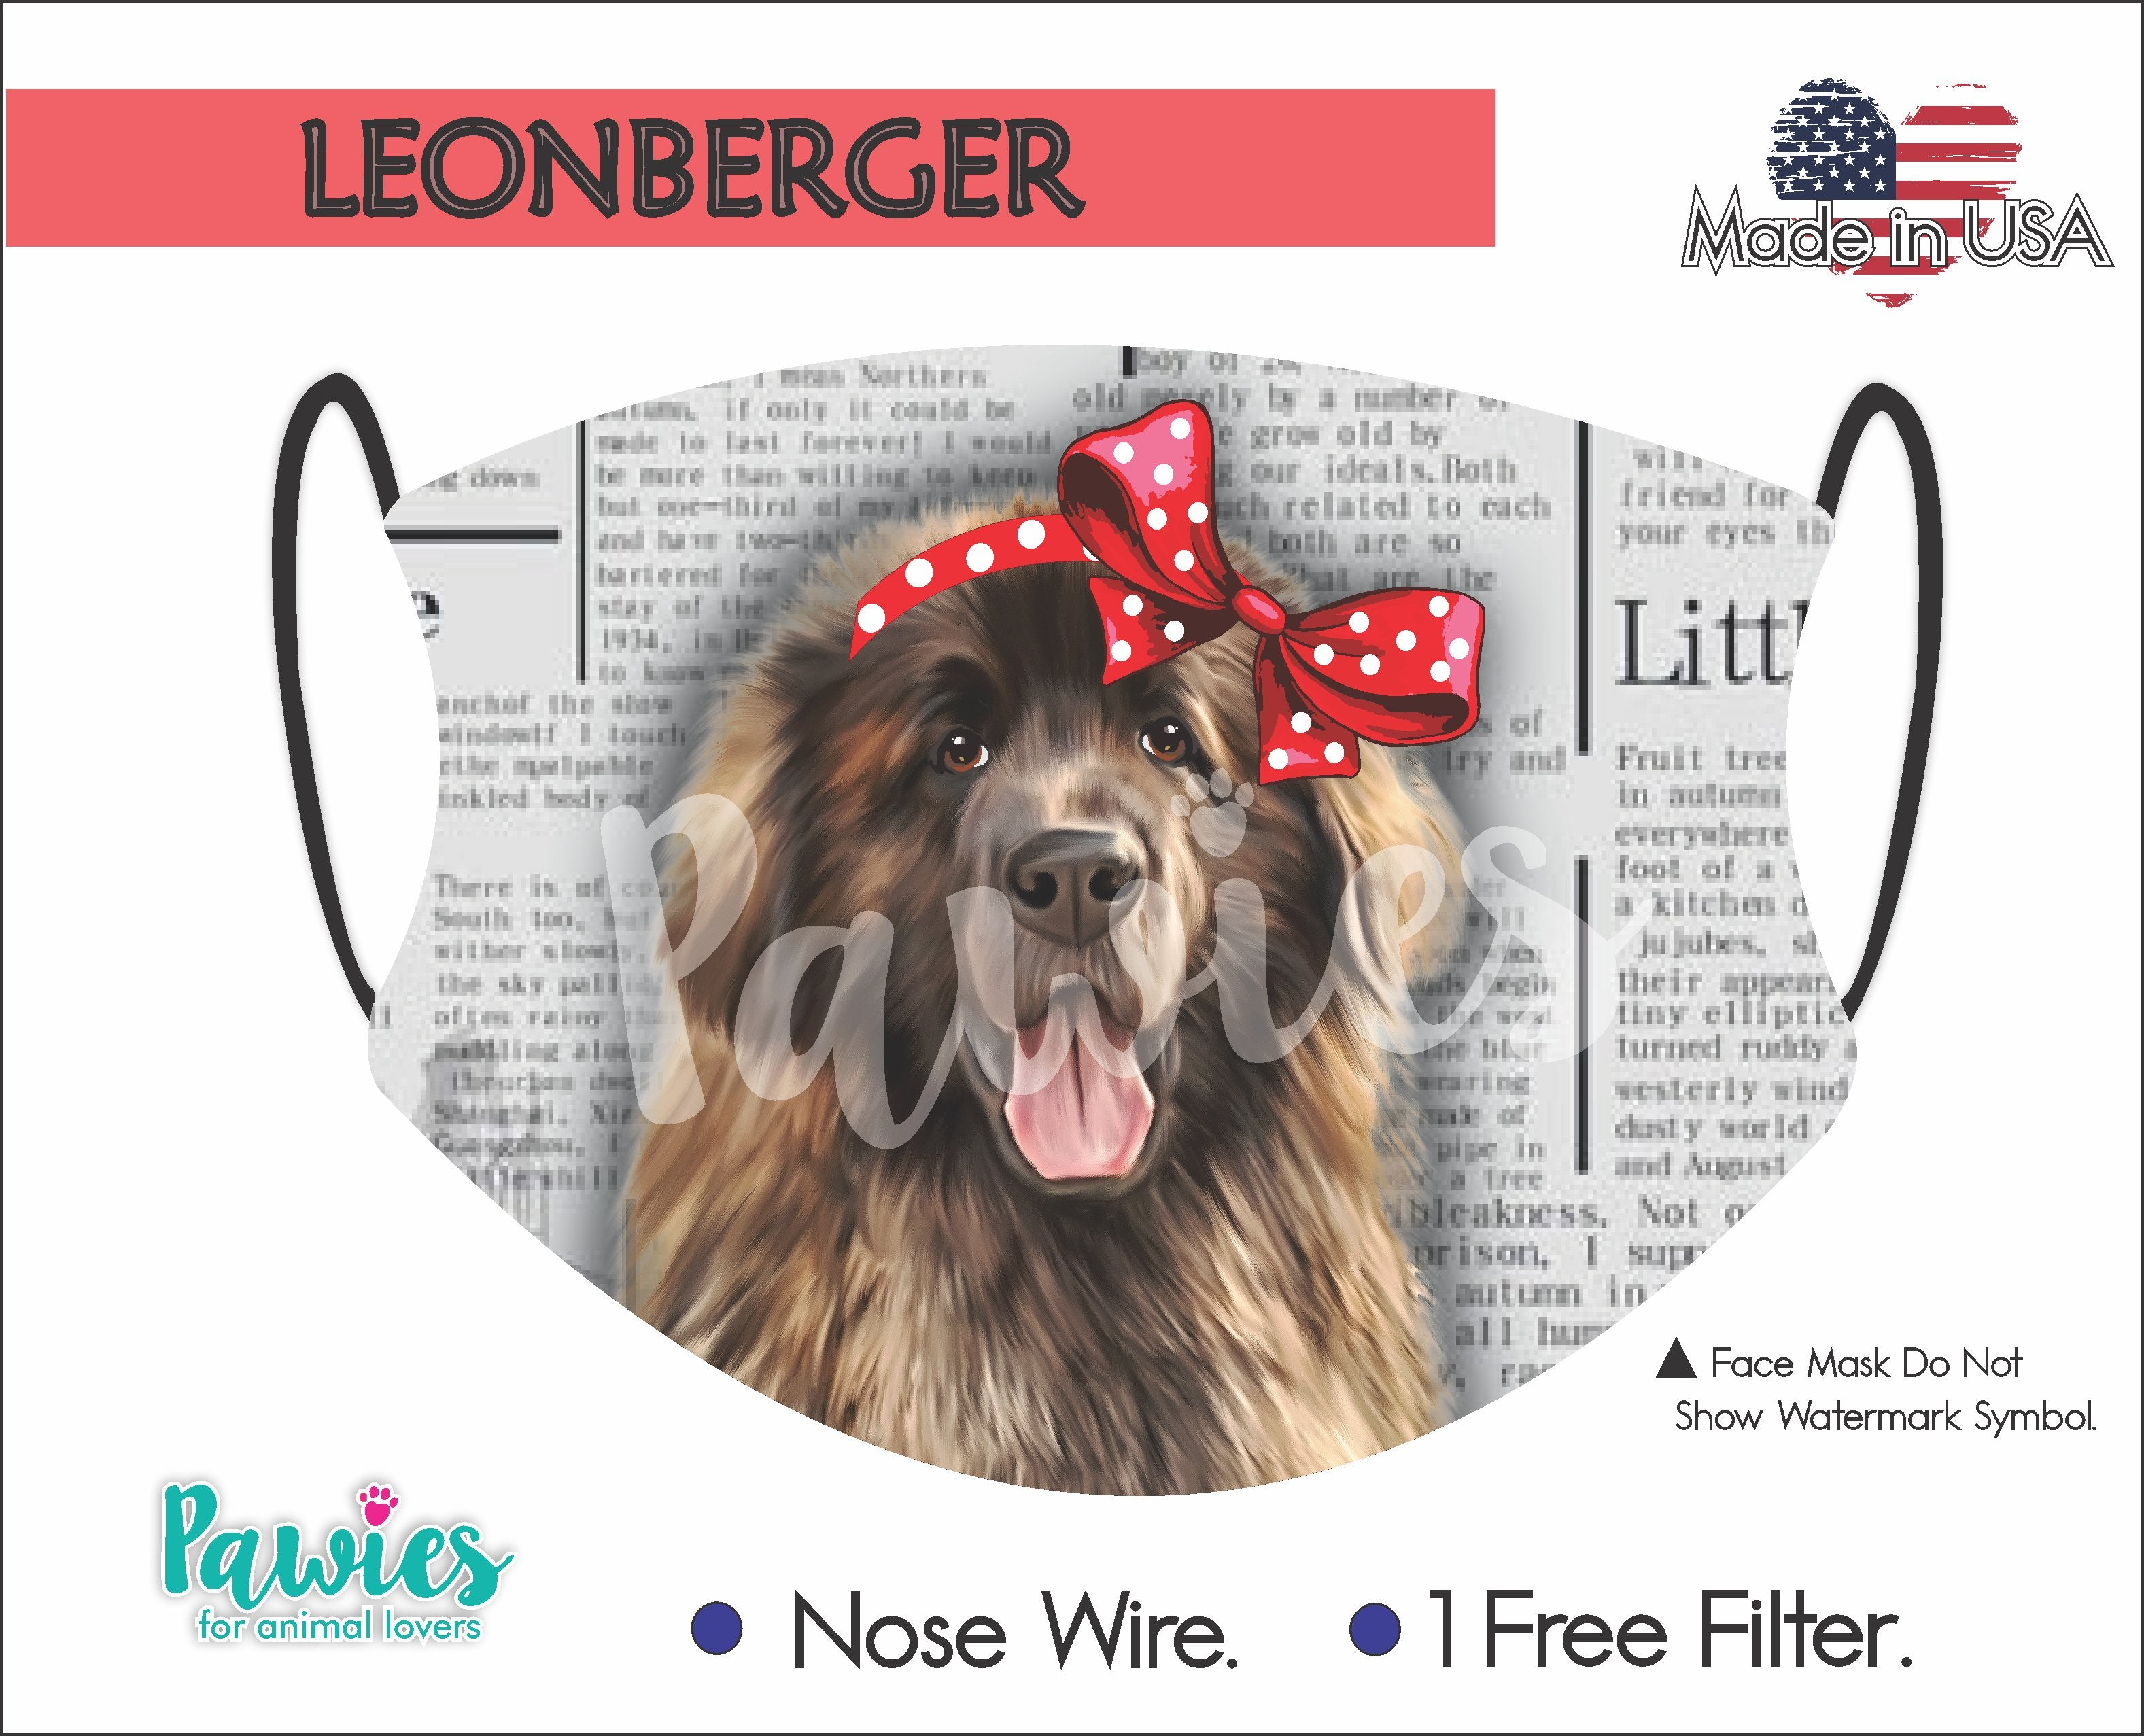 Leonberger Face Mask